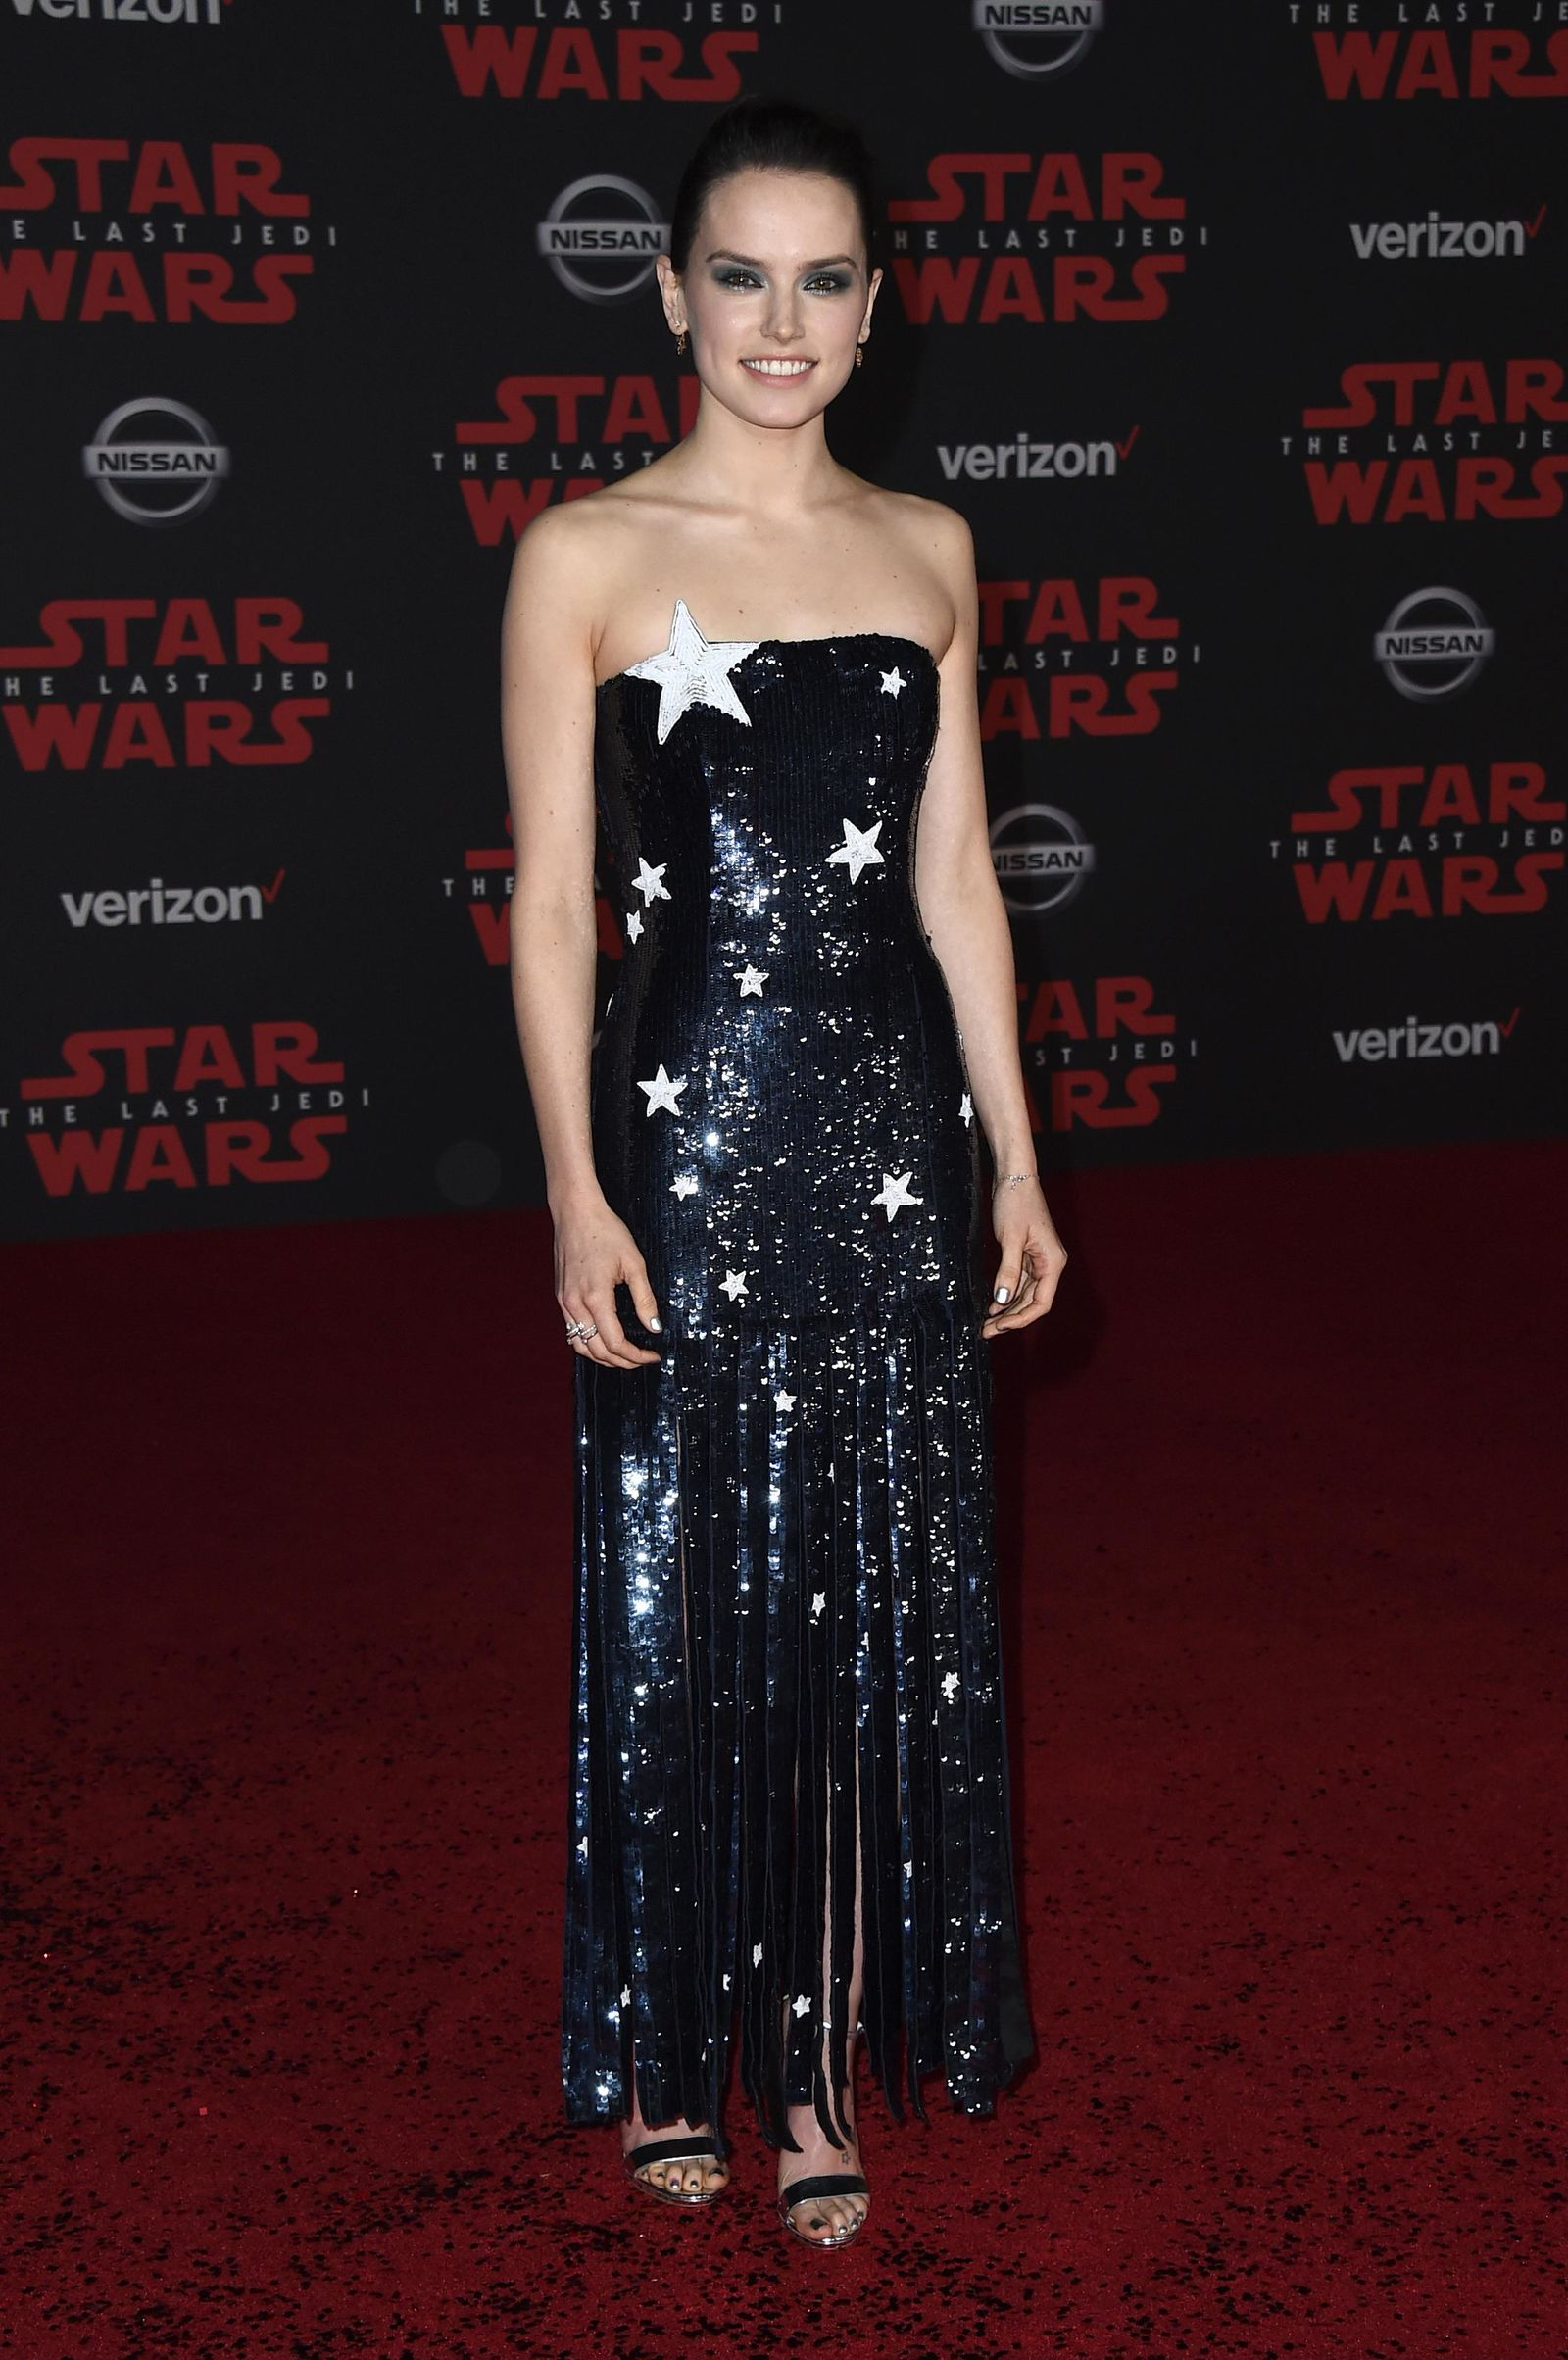 "Daisy Ridley arrives at the Los Angeles premiere of ""Star Wars: The Last Jedi"" at the Shrine Auditorium on Saturday, Dec. 9, 2017 in Los Angeles. (Photo by Jordan Strauss/Invision/AP)"